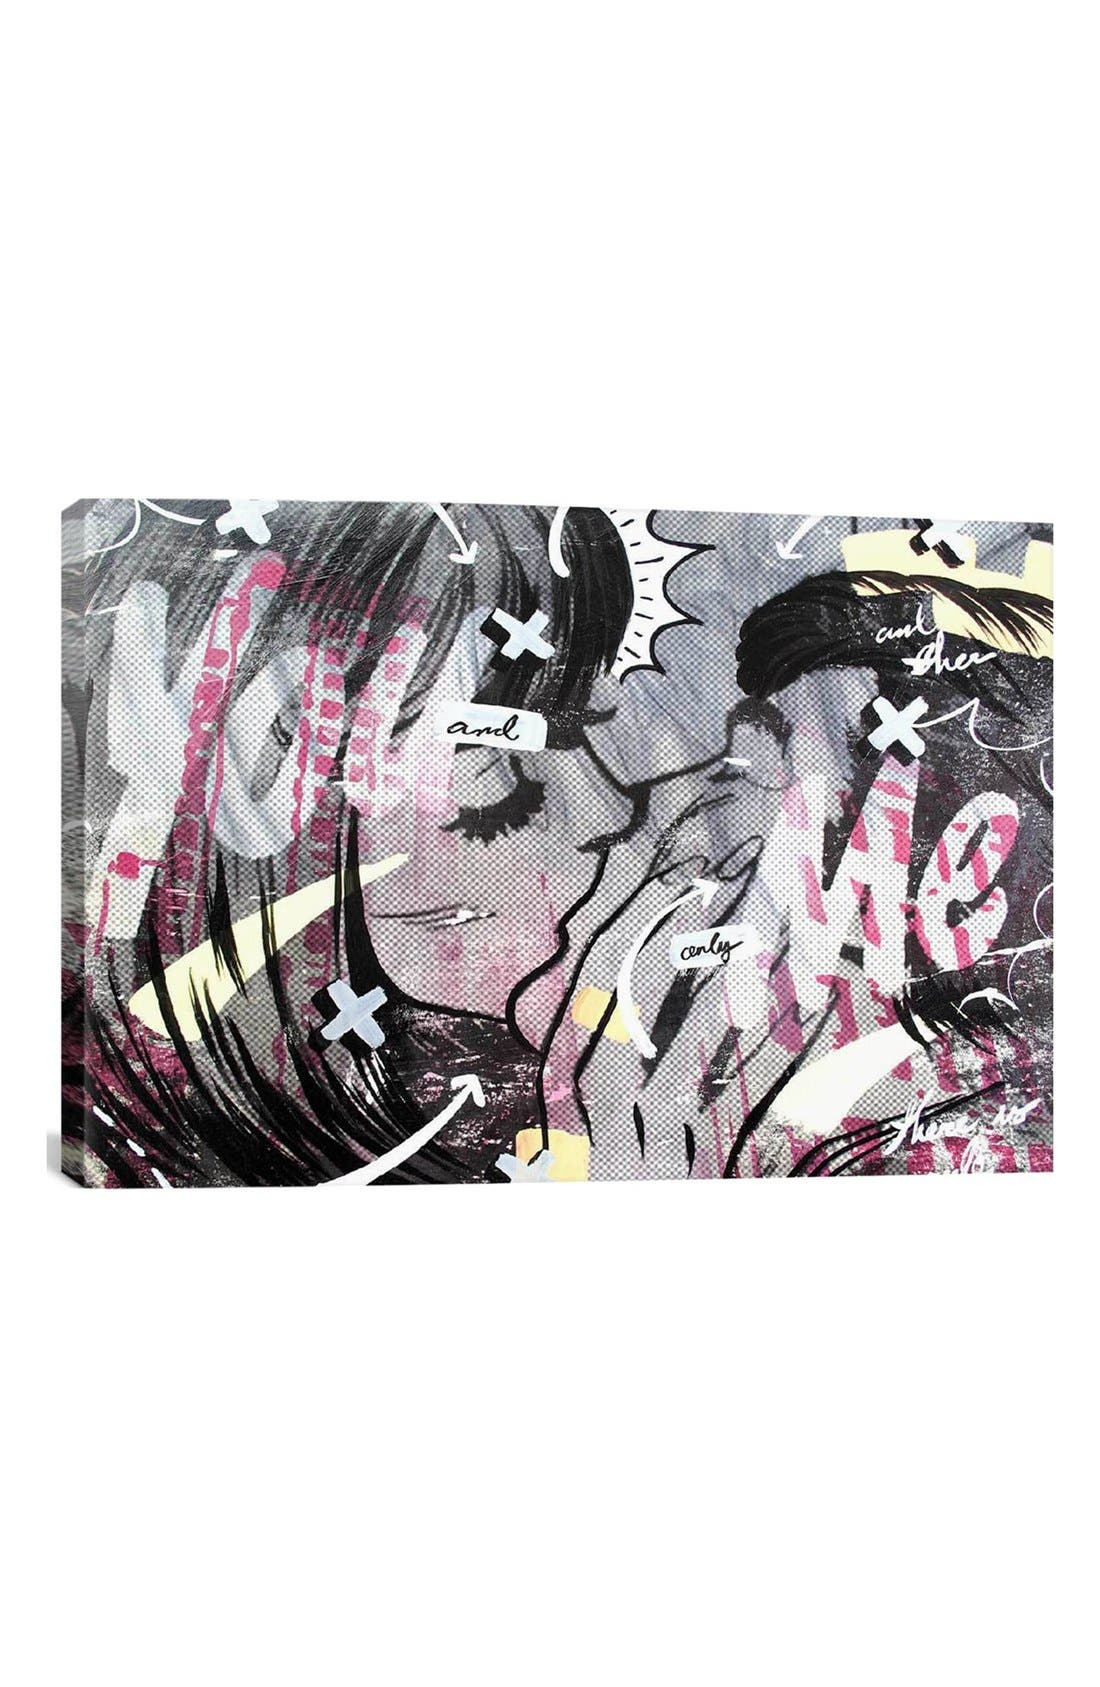 'And Only' Giclée Print Canvas Art,                         Main,                         color, White/ Black/ Pink